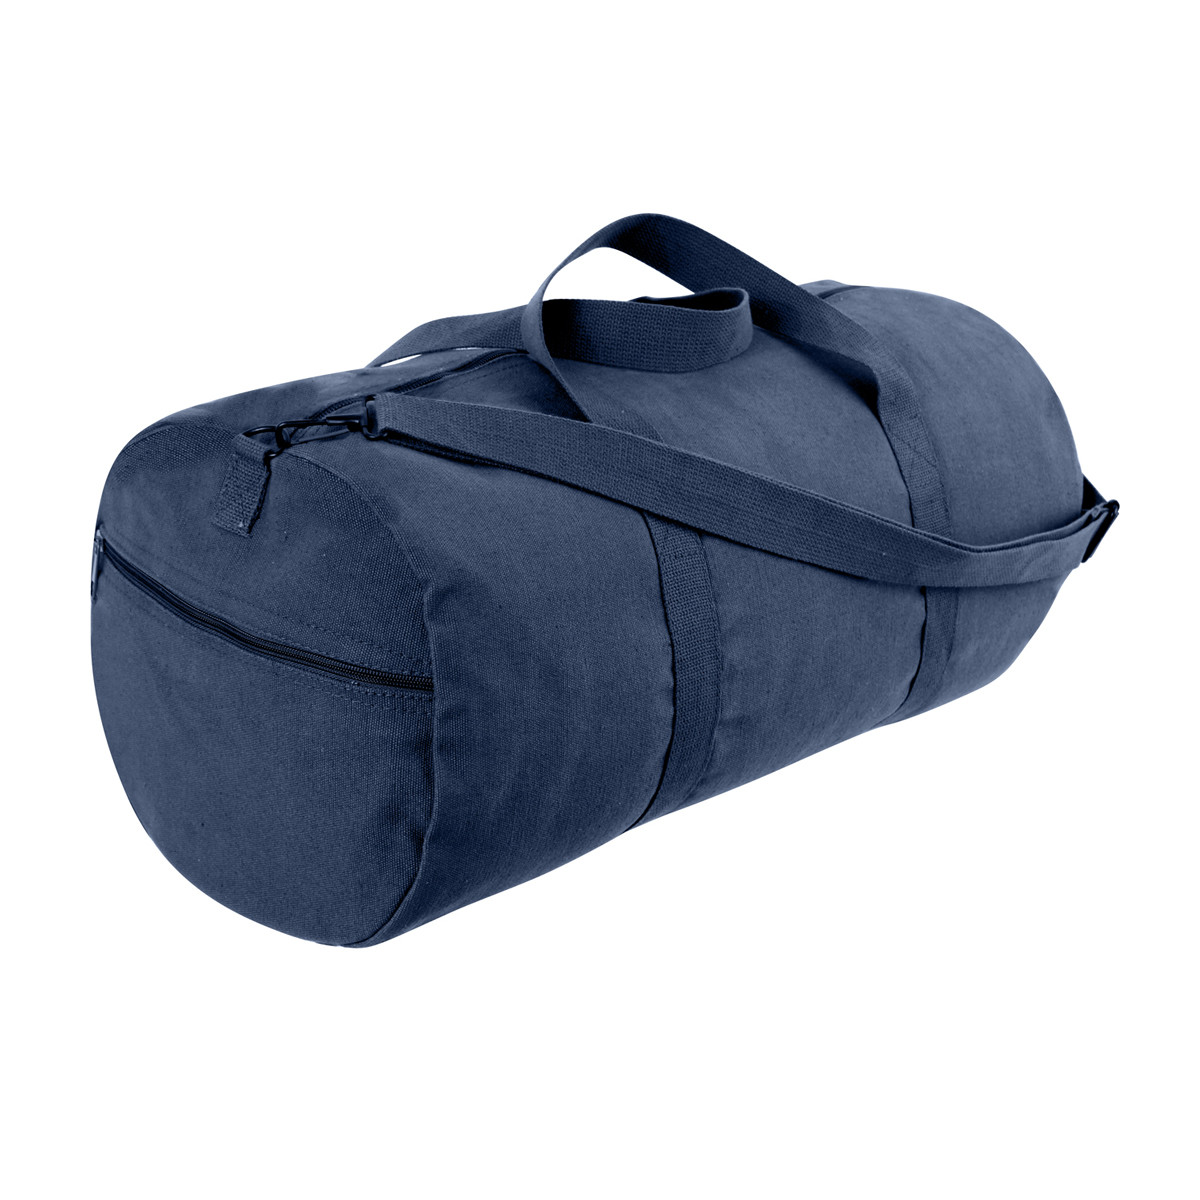 41540704bc47d6 Shop Navy Blue Canvas Sports Bags - Fatigues Army Navy Gear